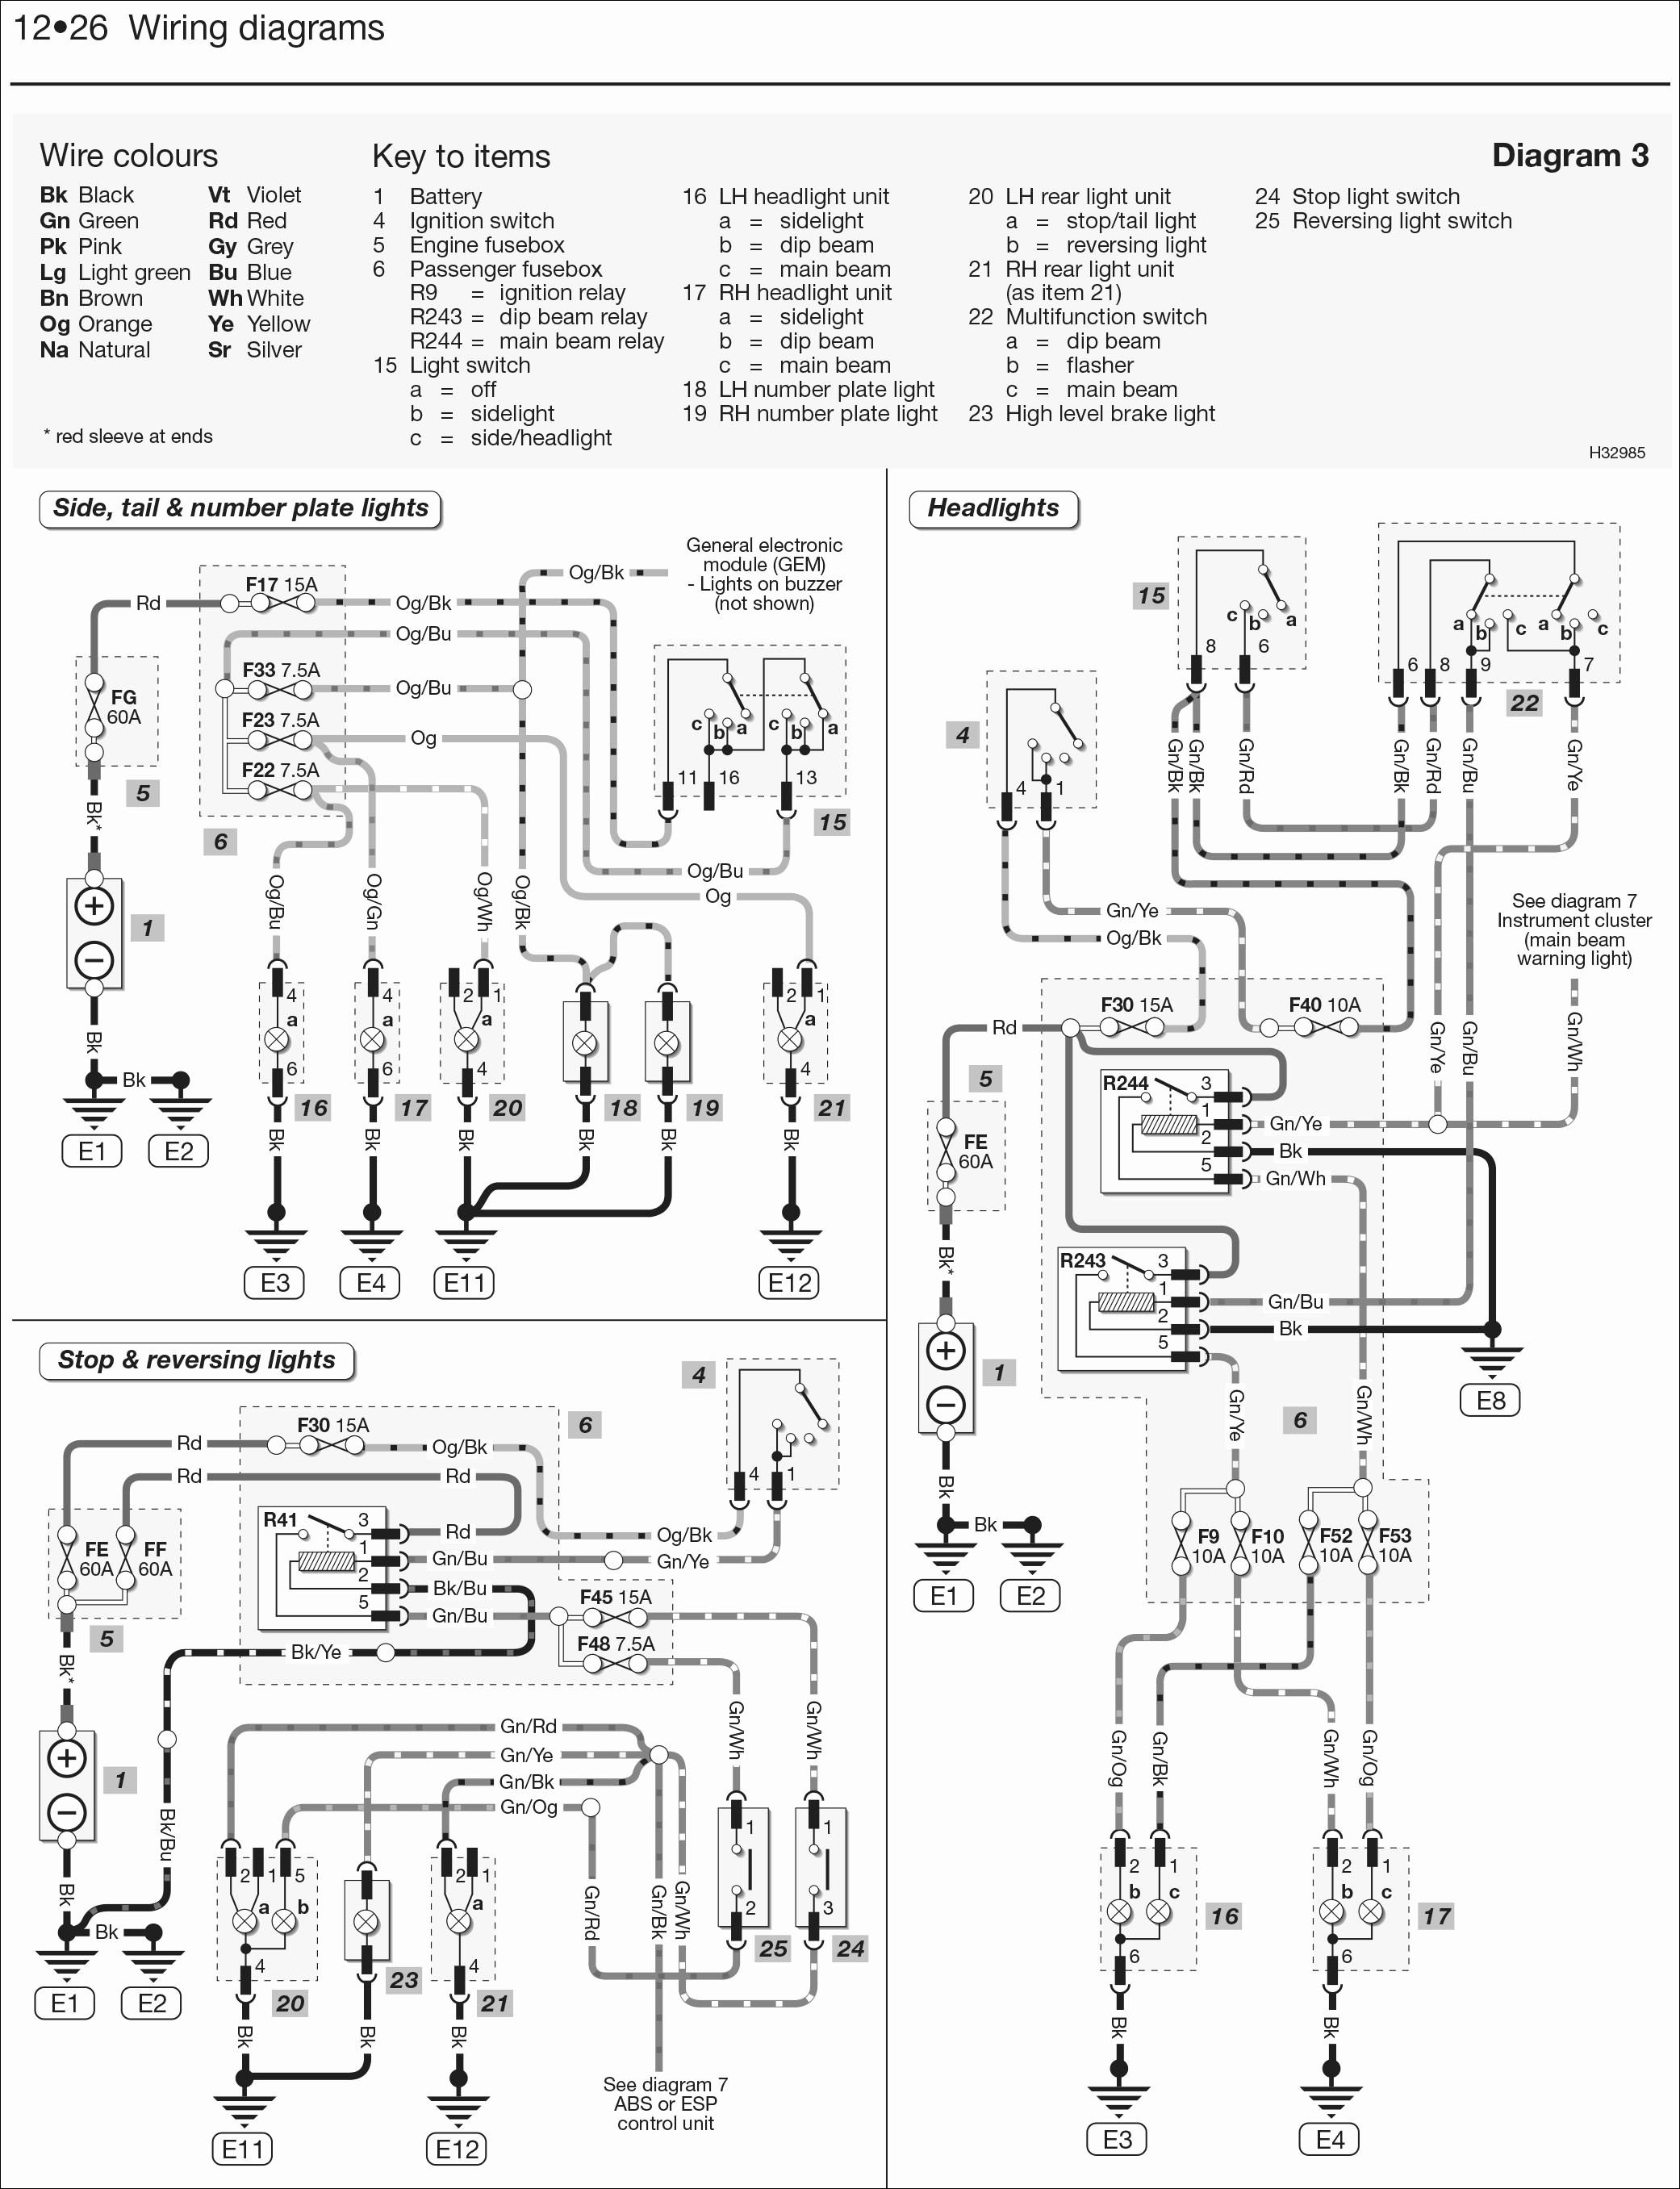 Stx38 Tractor Wiring Diagram from static-cdn.imageservice.cloud